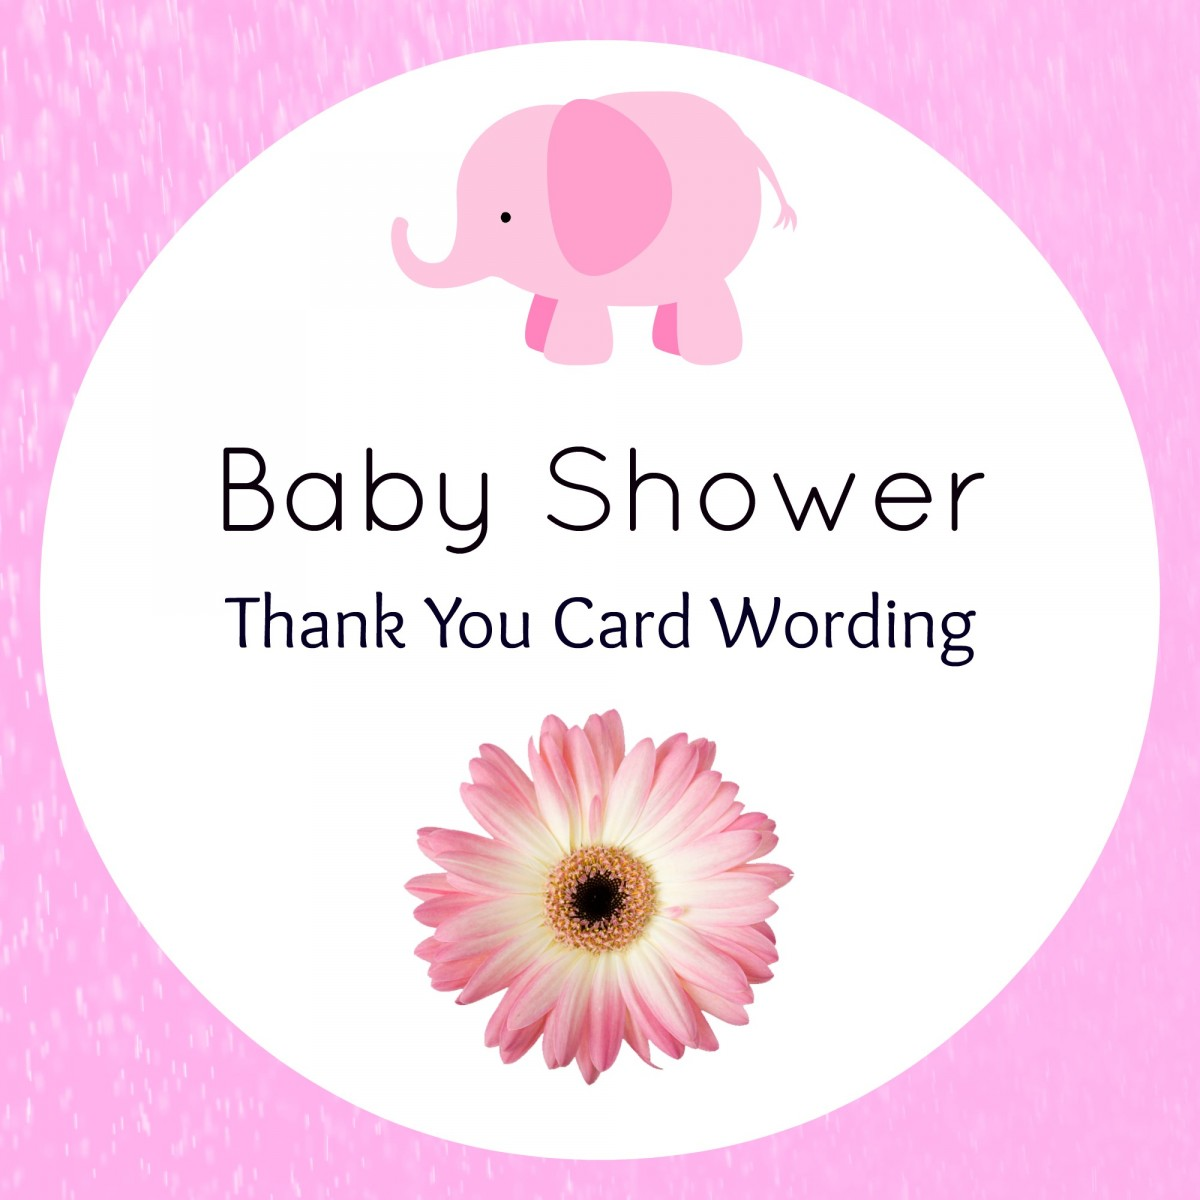 Full Size of Baby Shower:36+ Retro Baby Shower Thank You Wording Image Concepts Baby Shower Bingo Baby Shower Party Themes Baby Shower Ideas For Boys Baby Shower Food Ideas Baby Shower Boy Baby Shower Stuff